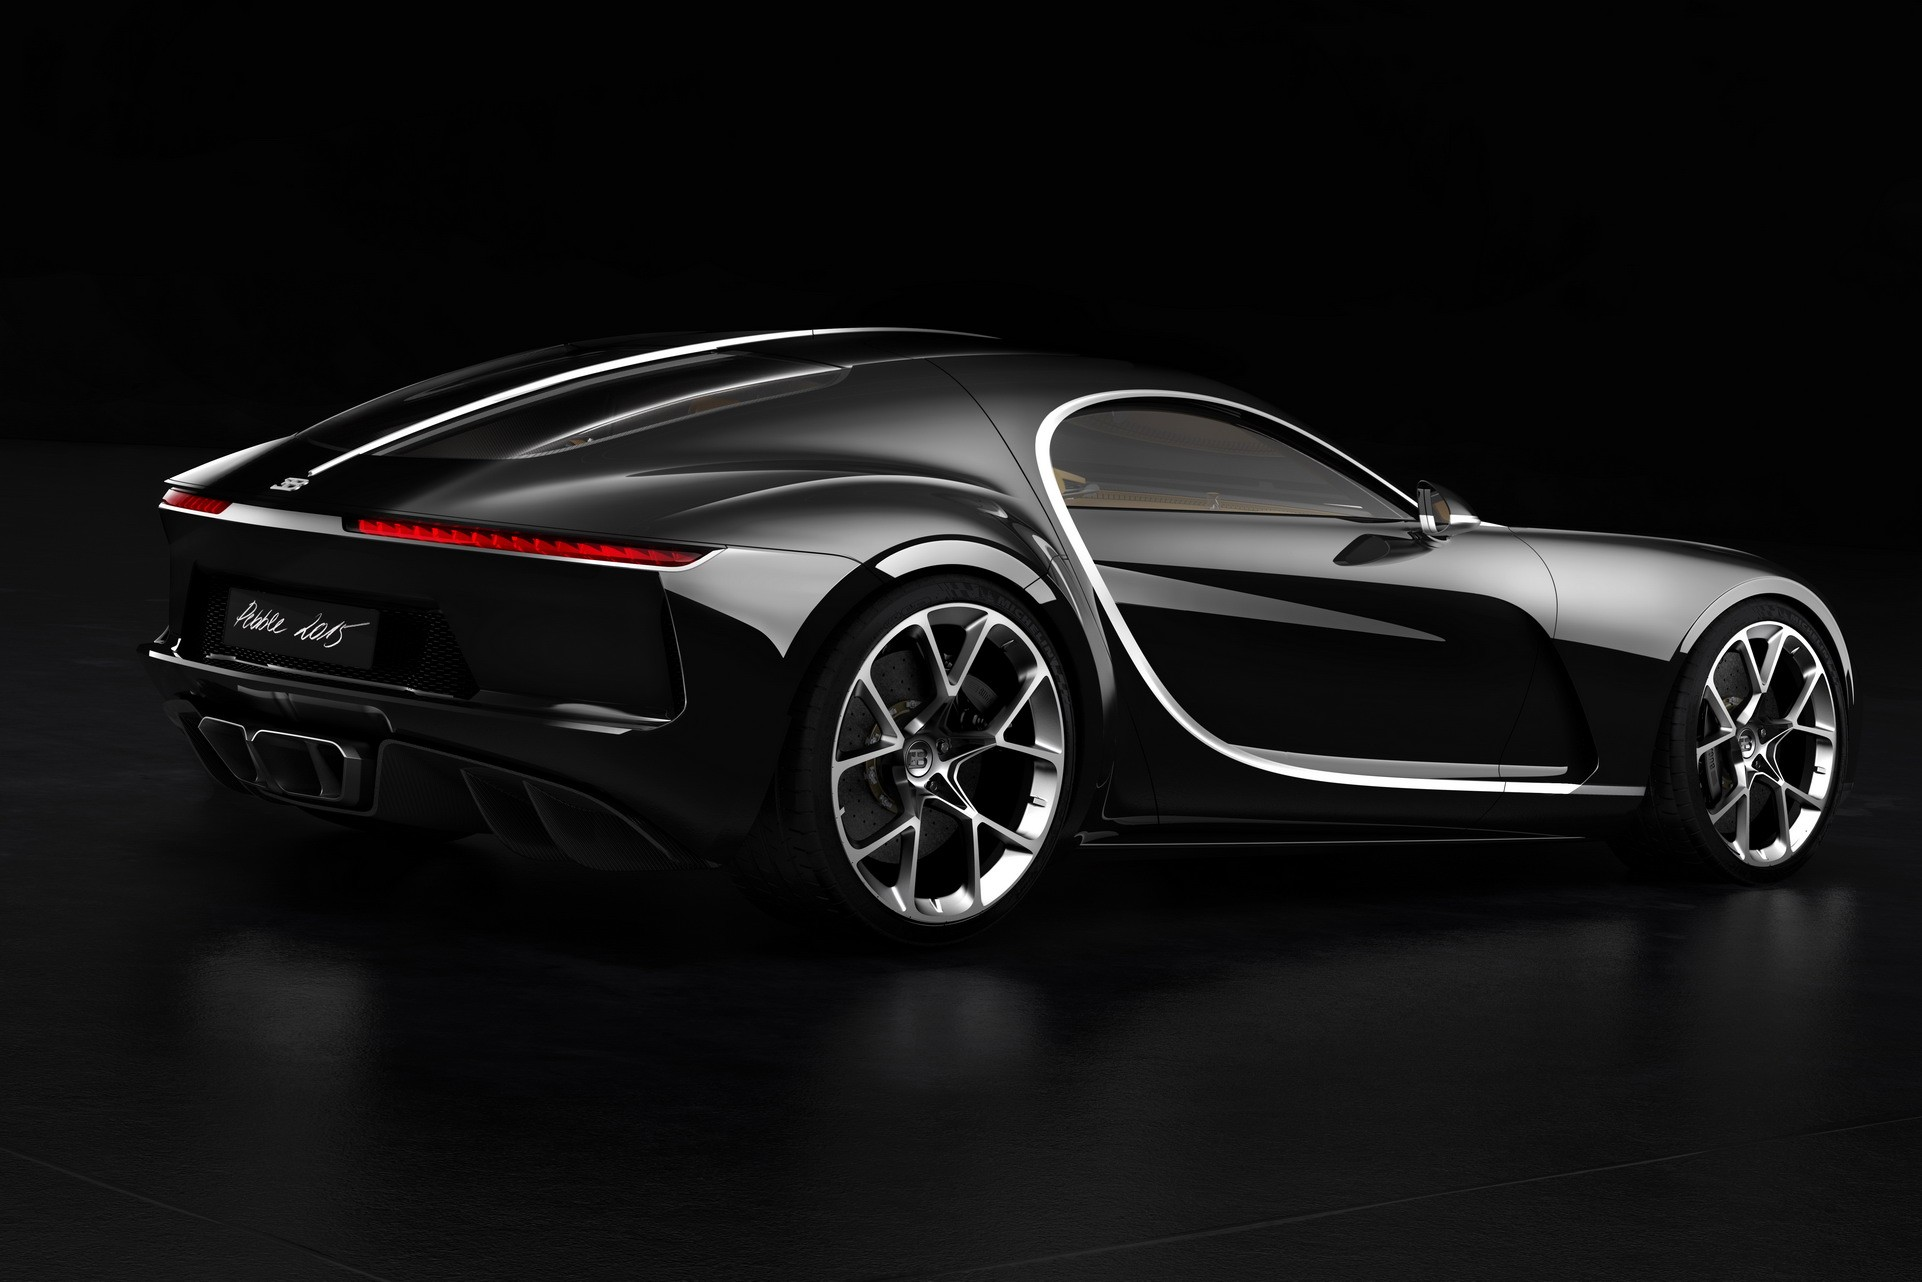 Pebble Beach Car Show >> Bugatti Atlantic Concept Looks Classy, Was Supposed to Use ...